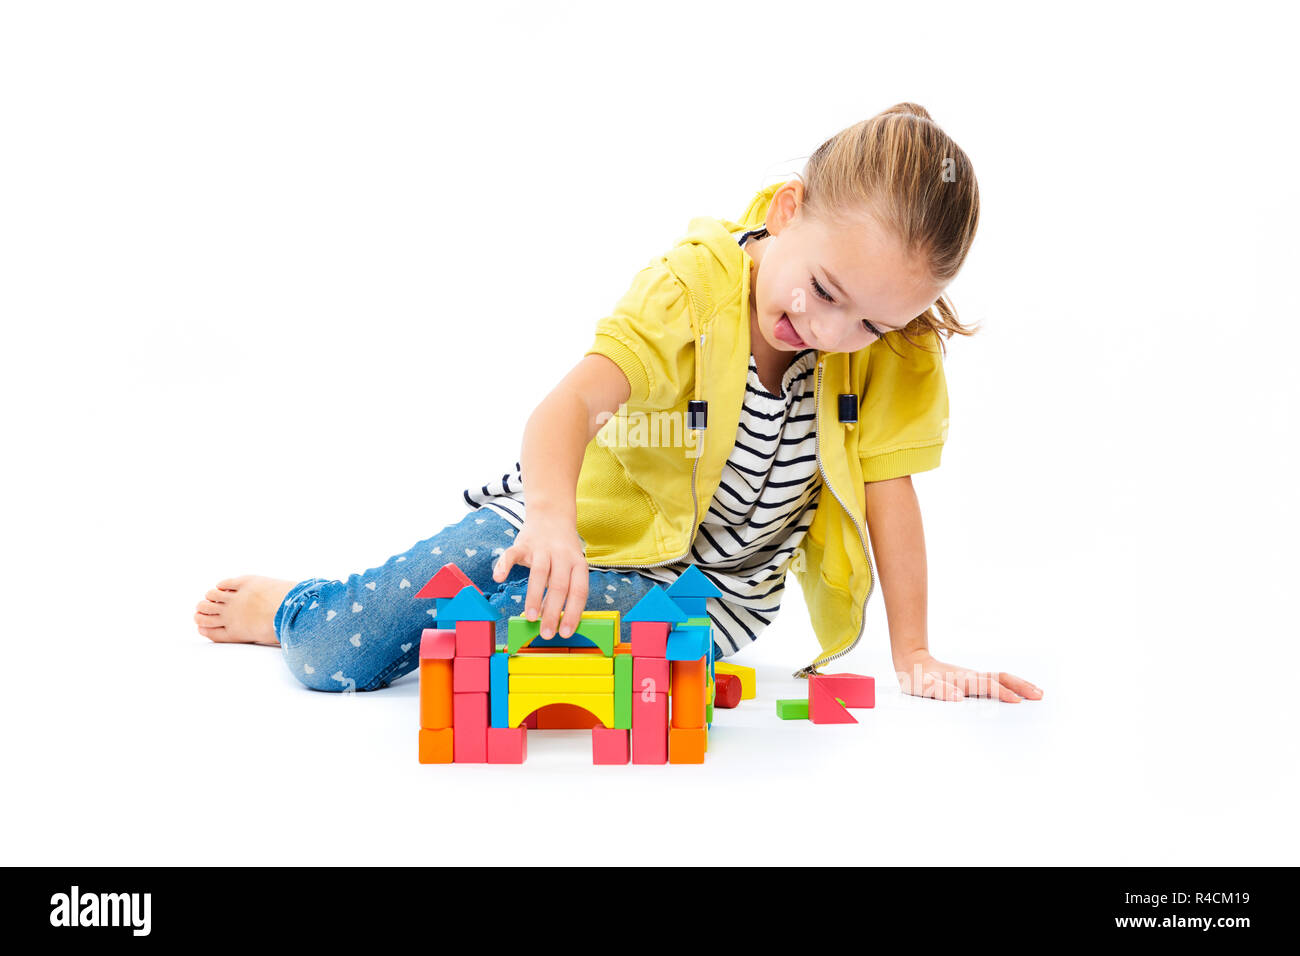 Young girl building a castle with wooden toy block. Child play therapy concept on white background. - Stock Image